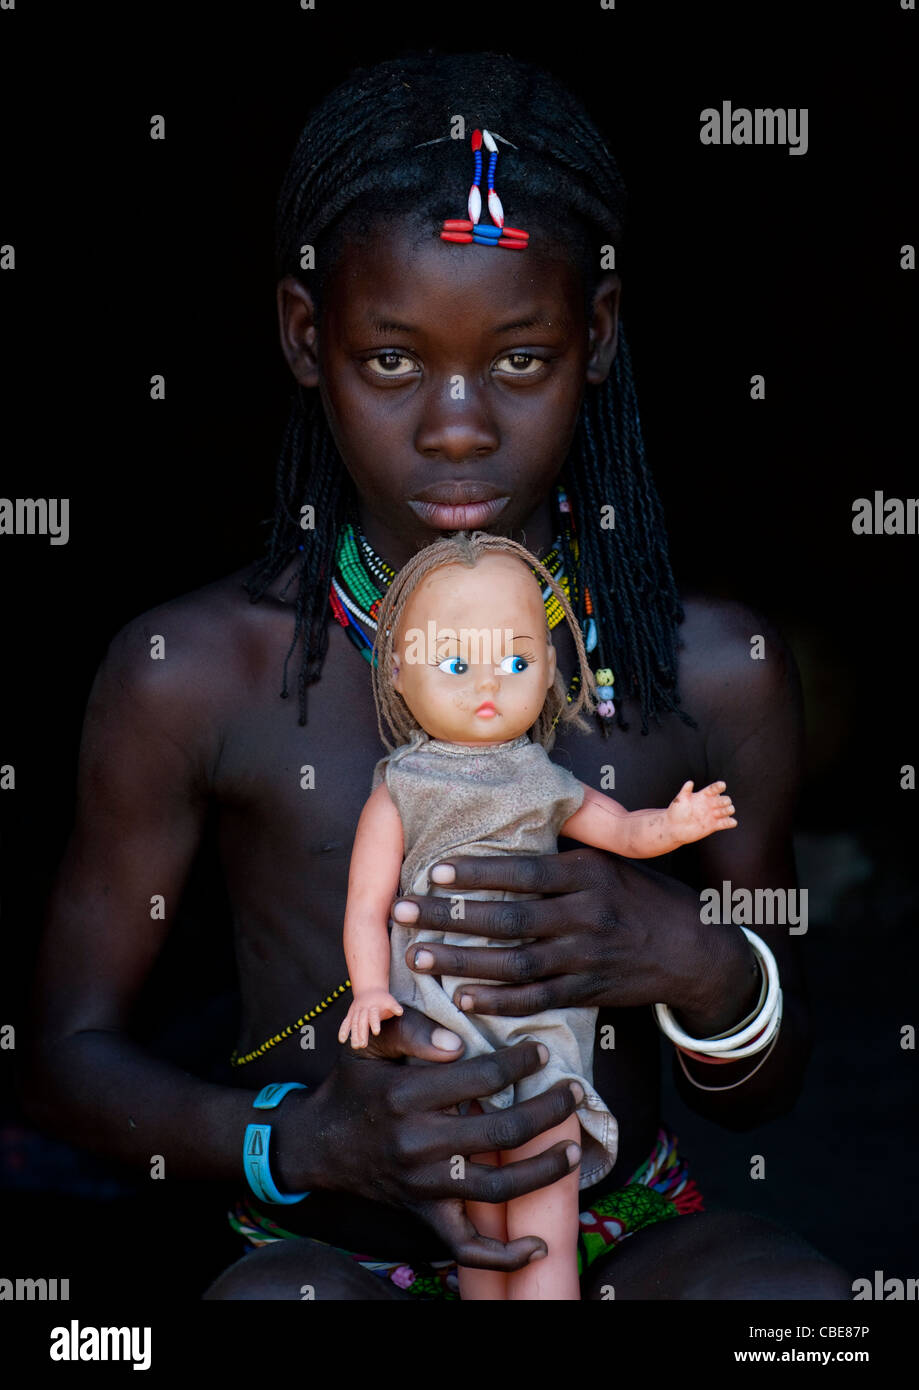 Misses Chioveni, A Mucawana Girl Showing Her Western Doll, Village Of Soba, Angola - Stock Image